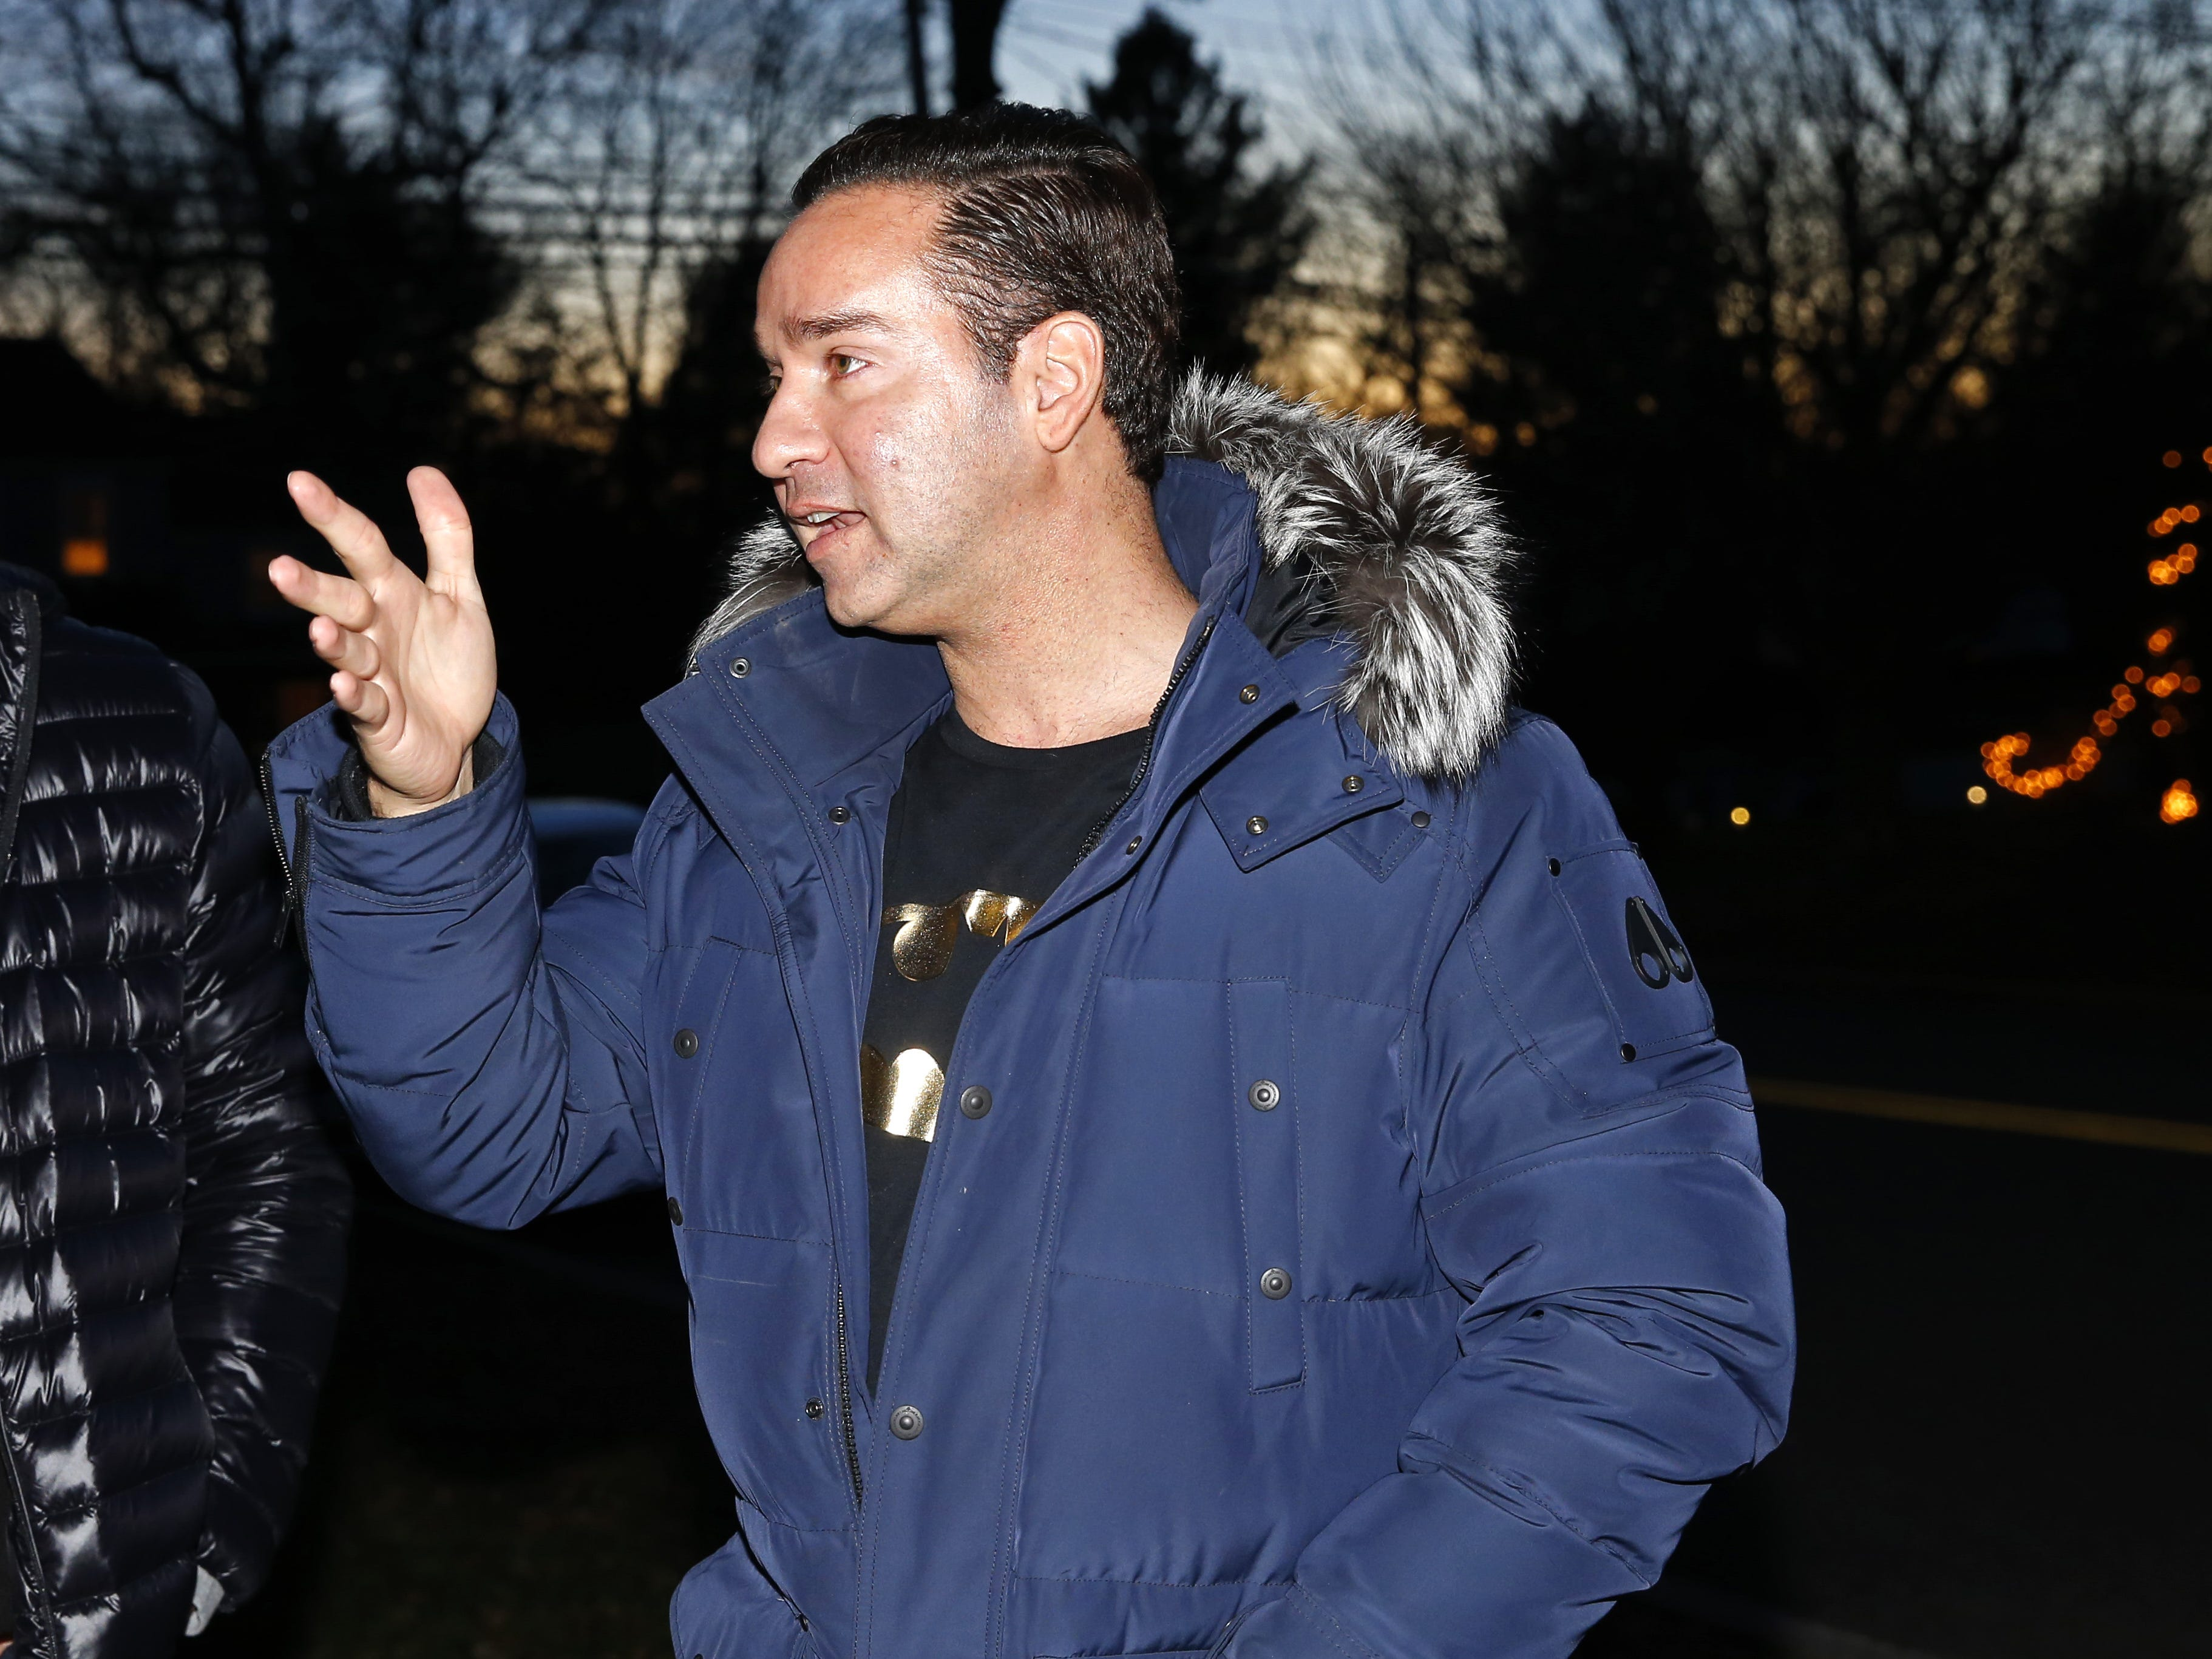 Mike 'The Situation' Sorrentino reveals last moments before going to prison